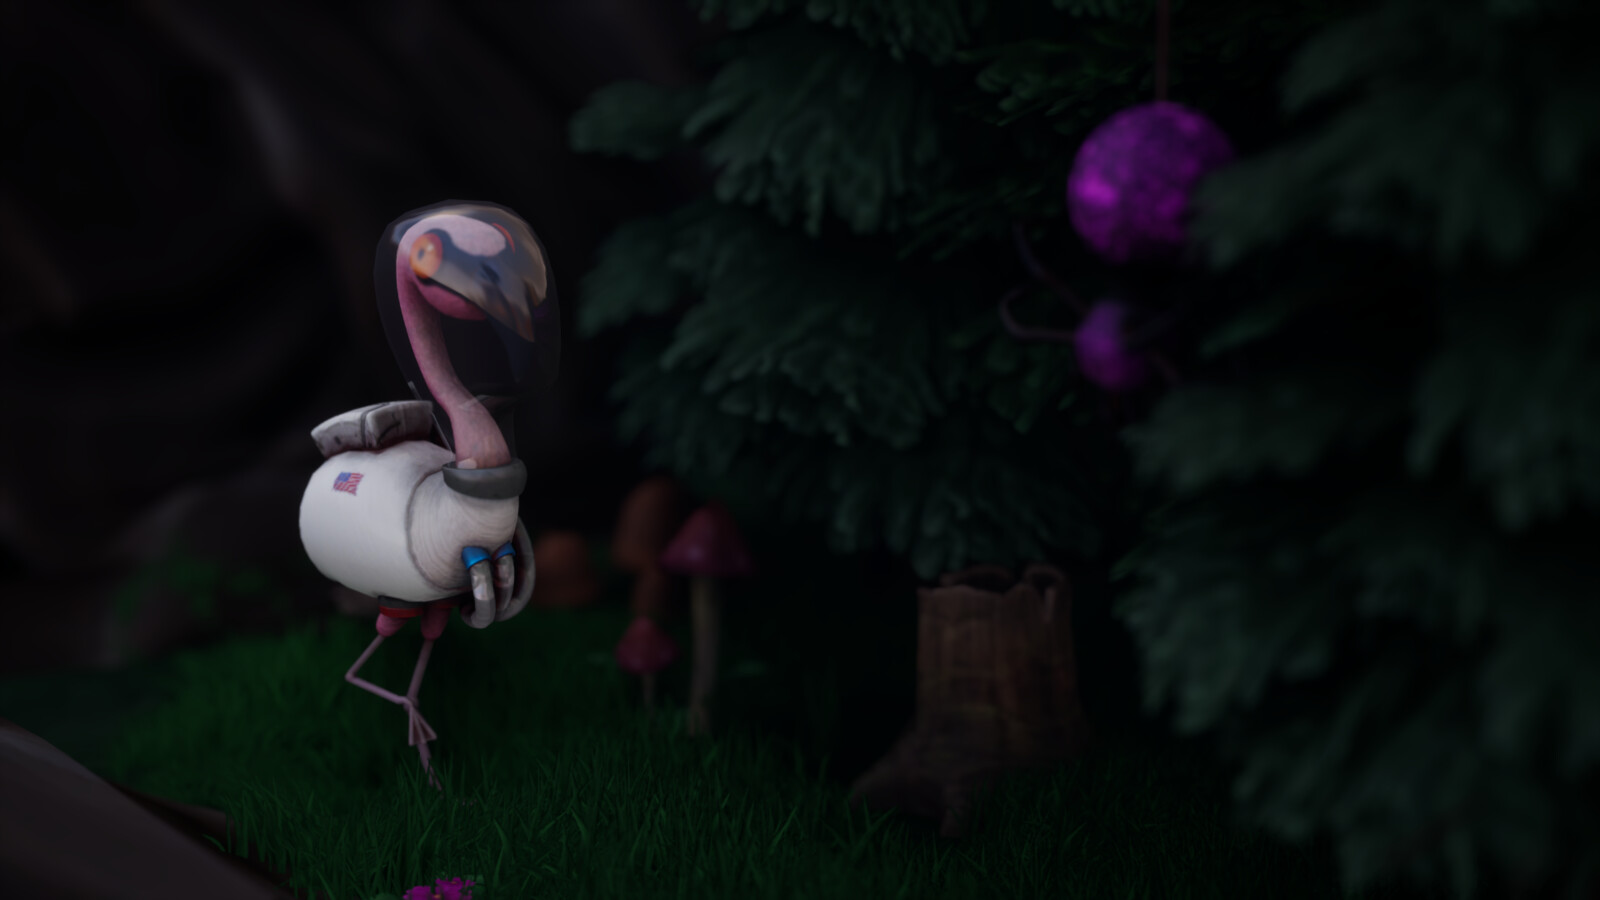 Buzz and Tony hang. In-game. Shrubs, grass and trees are from the UE4 marketplace